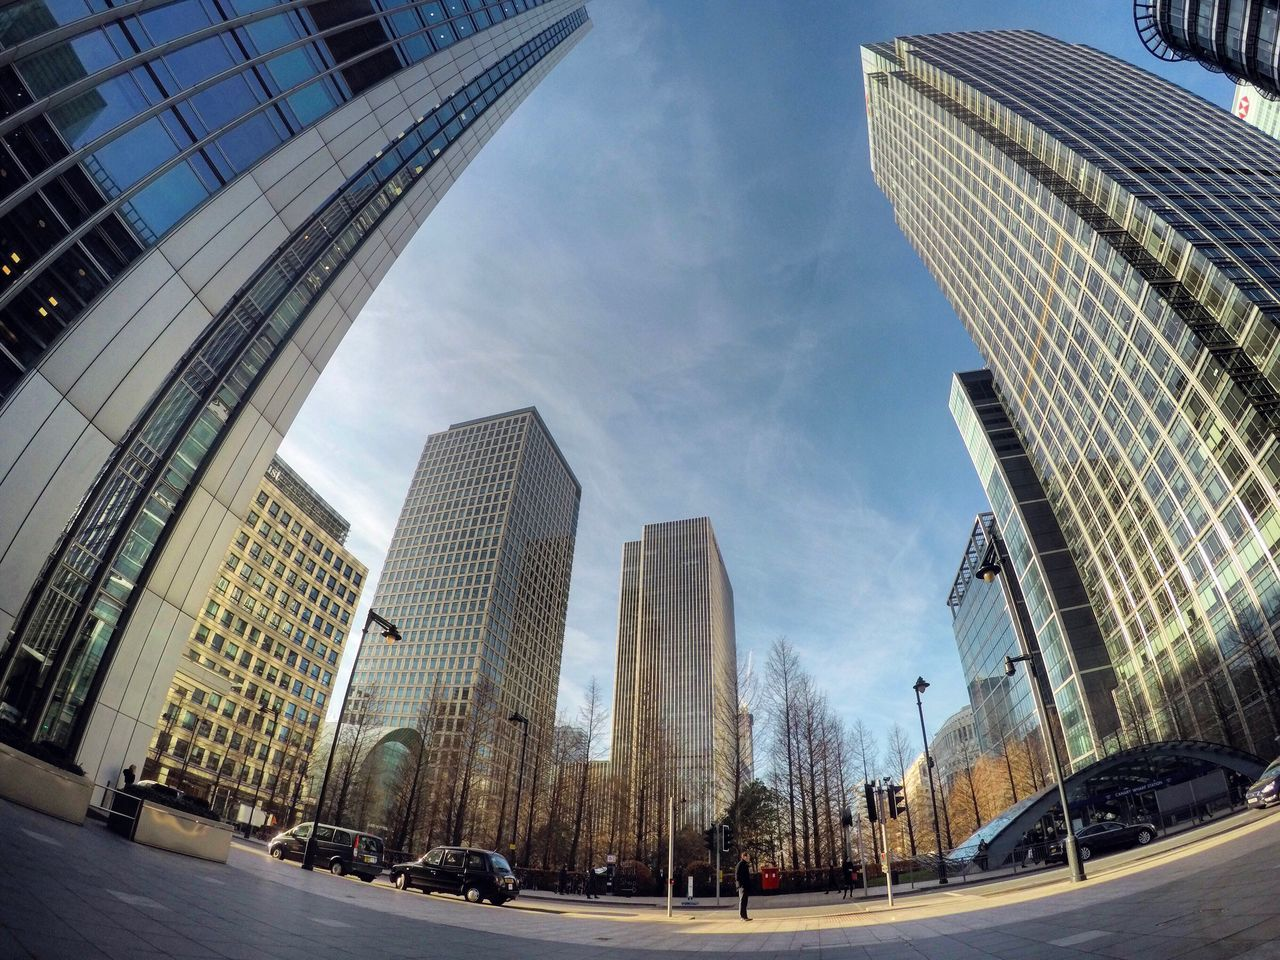 Architecture Building Exterior Built Structure Modern Skyscraper City Tower Sky City Financial District  Outdoors Office Building Exterior Day Downtown District Large Group Of People People England Uk Photography EyeEmNewHere Streetphotography Architecture (null) London Gopro The Architect - 2017 EyeEm Awards The Street Photographer - 2017 EyeEm Awards